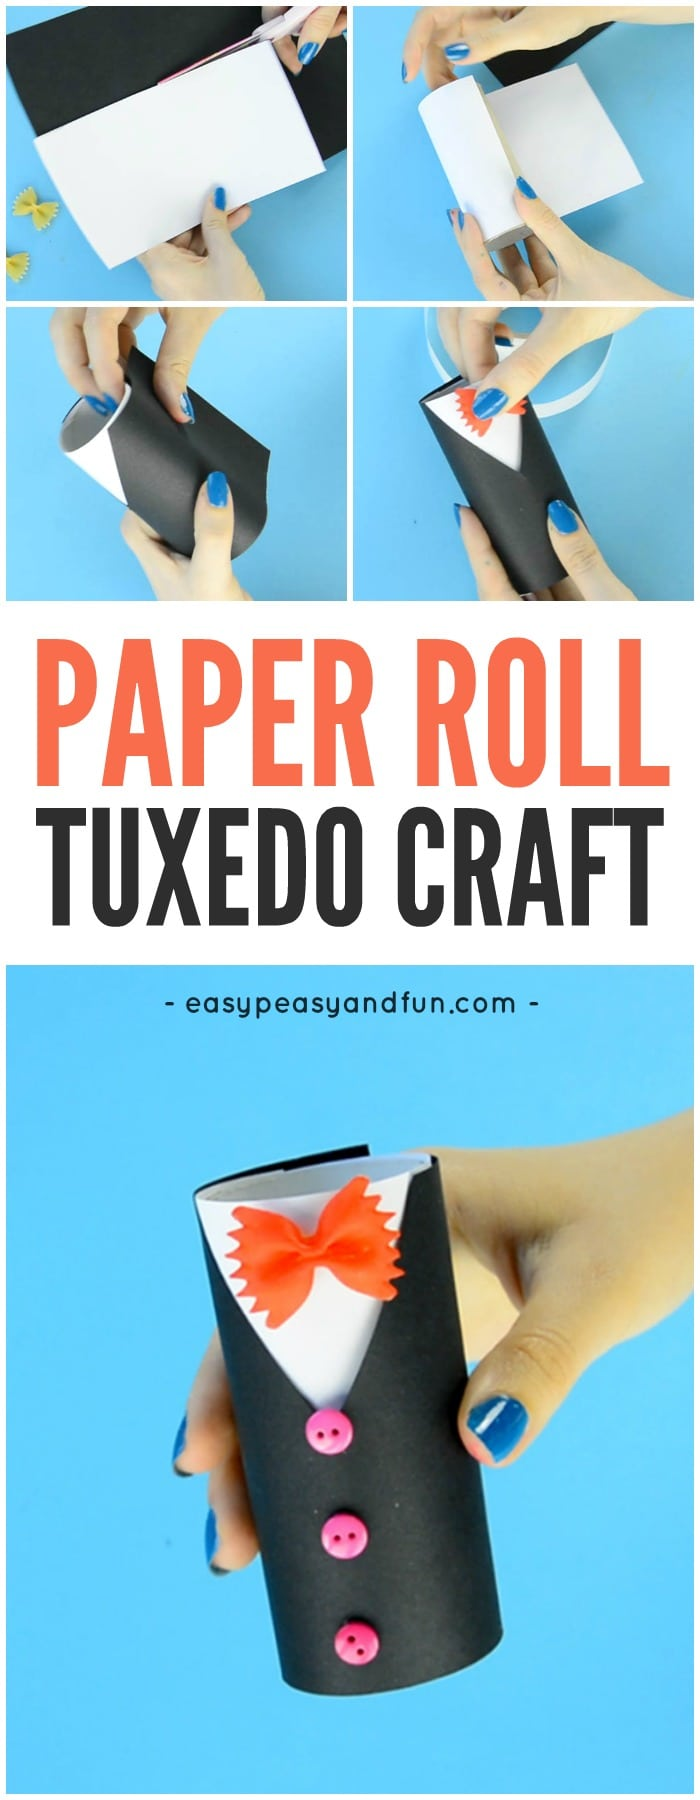 Paper Roll Tuxedo Craft Easy Peasy And Fun